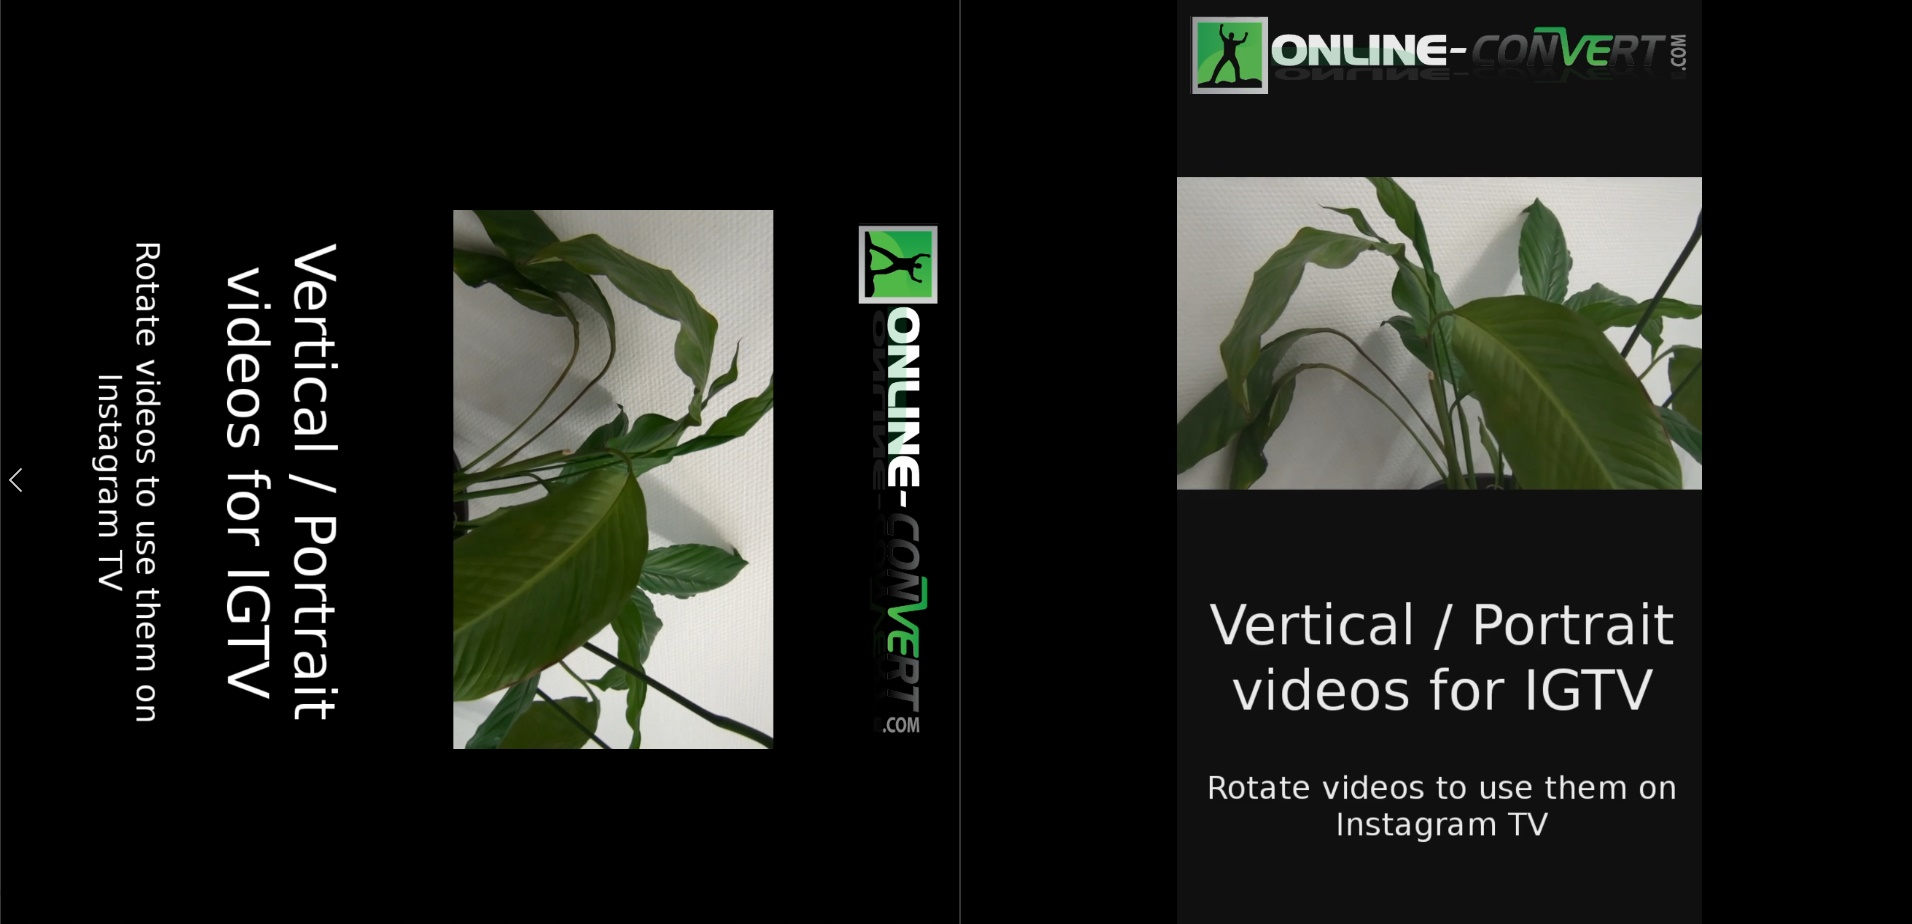 How to rotate videos for igtv tutorial online file conversion blog below we opened both videos in two different media players on the left you can see the edited video on the right you see the video after rotation ccuart Images